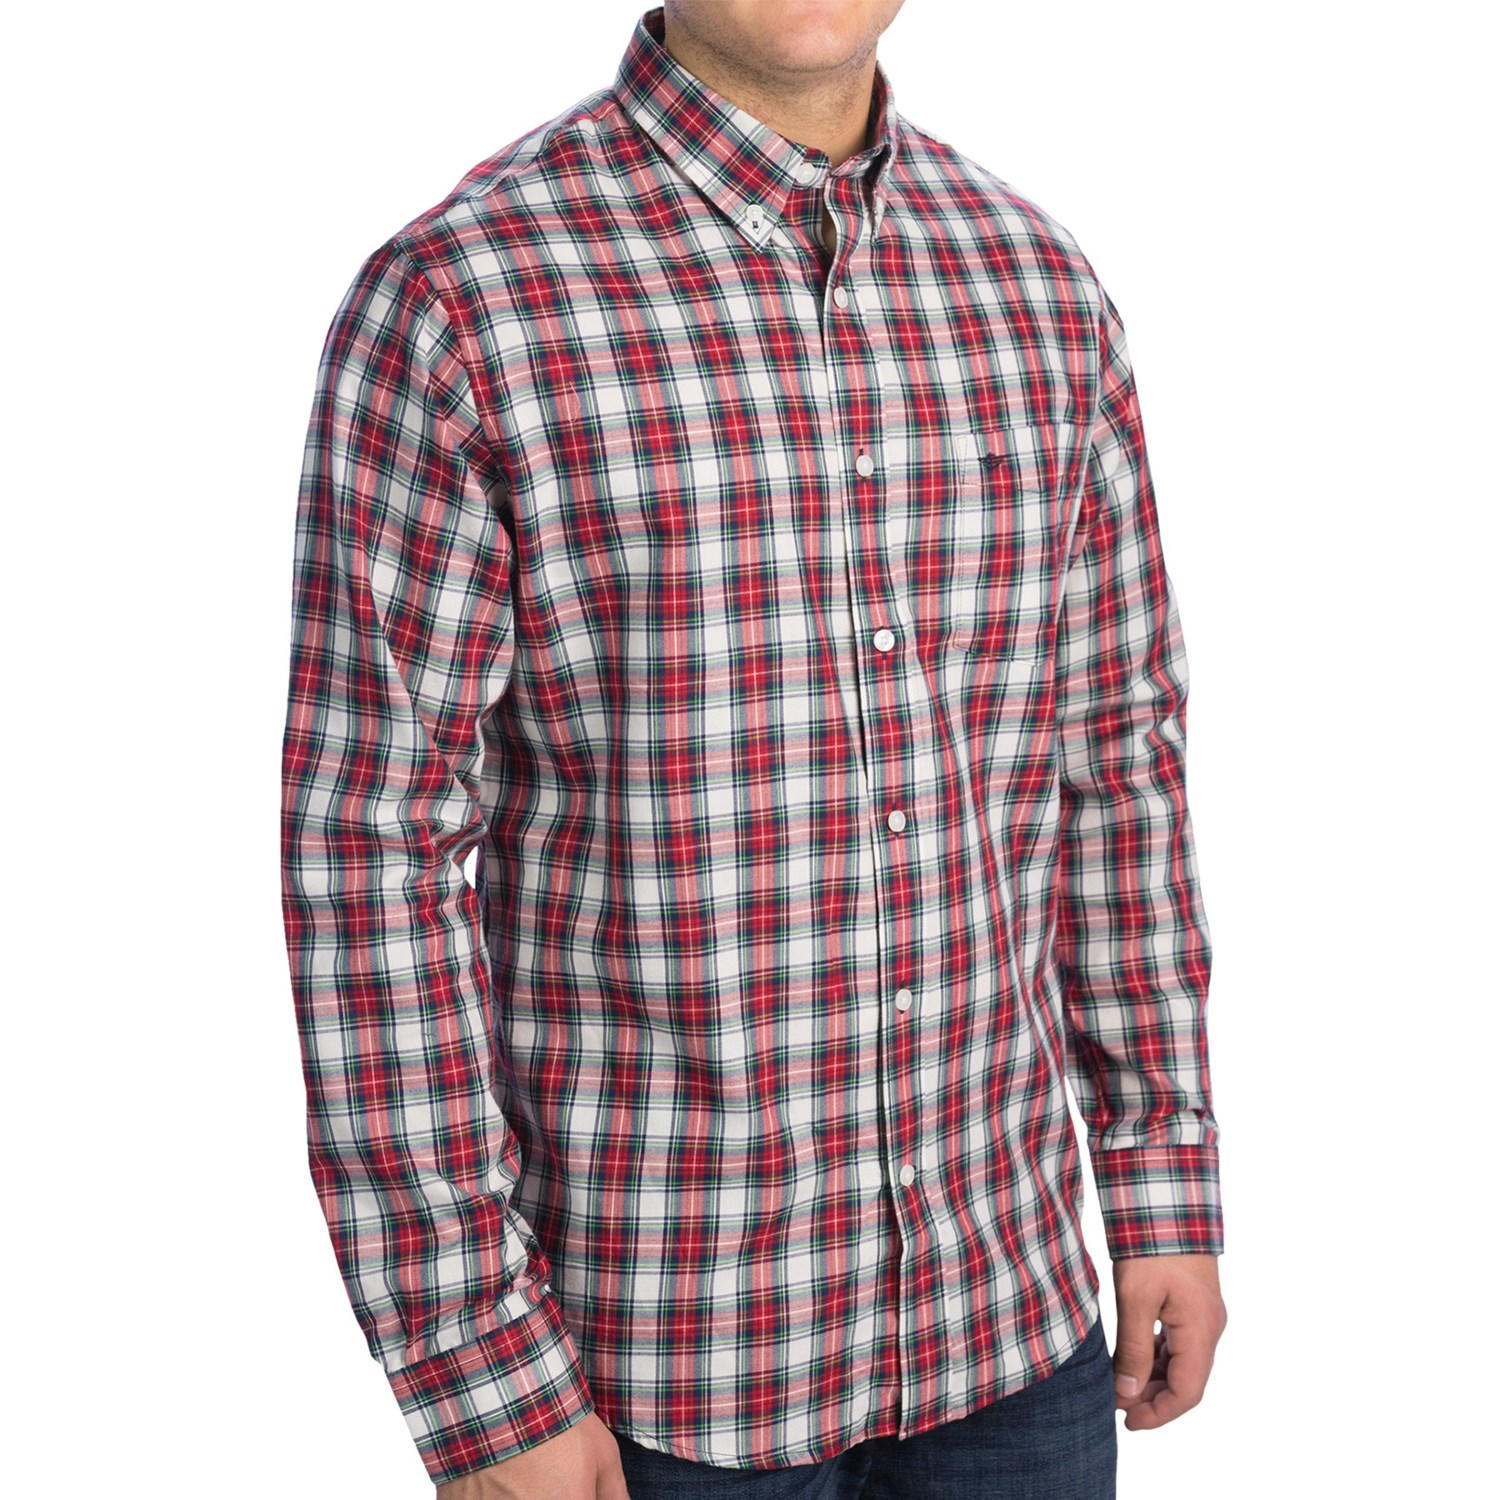 Dockers soft no wrinkle plaid shirt for men 8282r save 70 for Dockers wrinkle free shirts